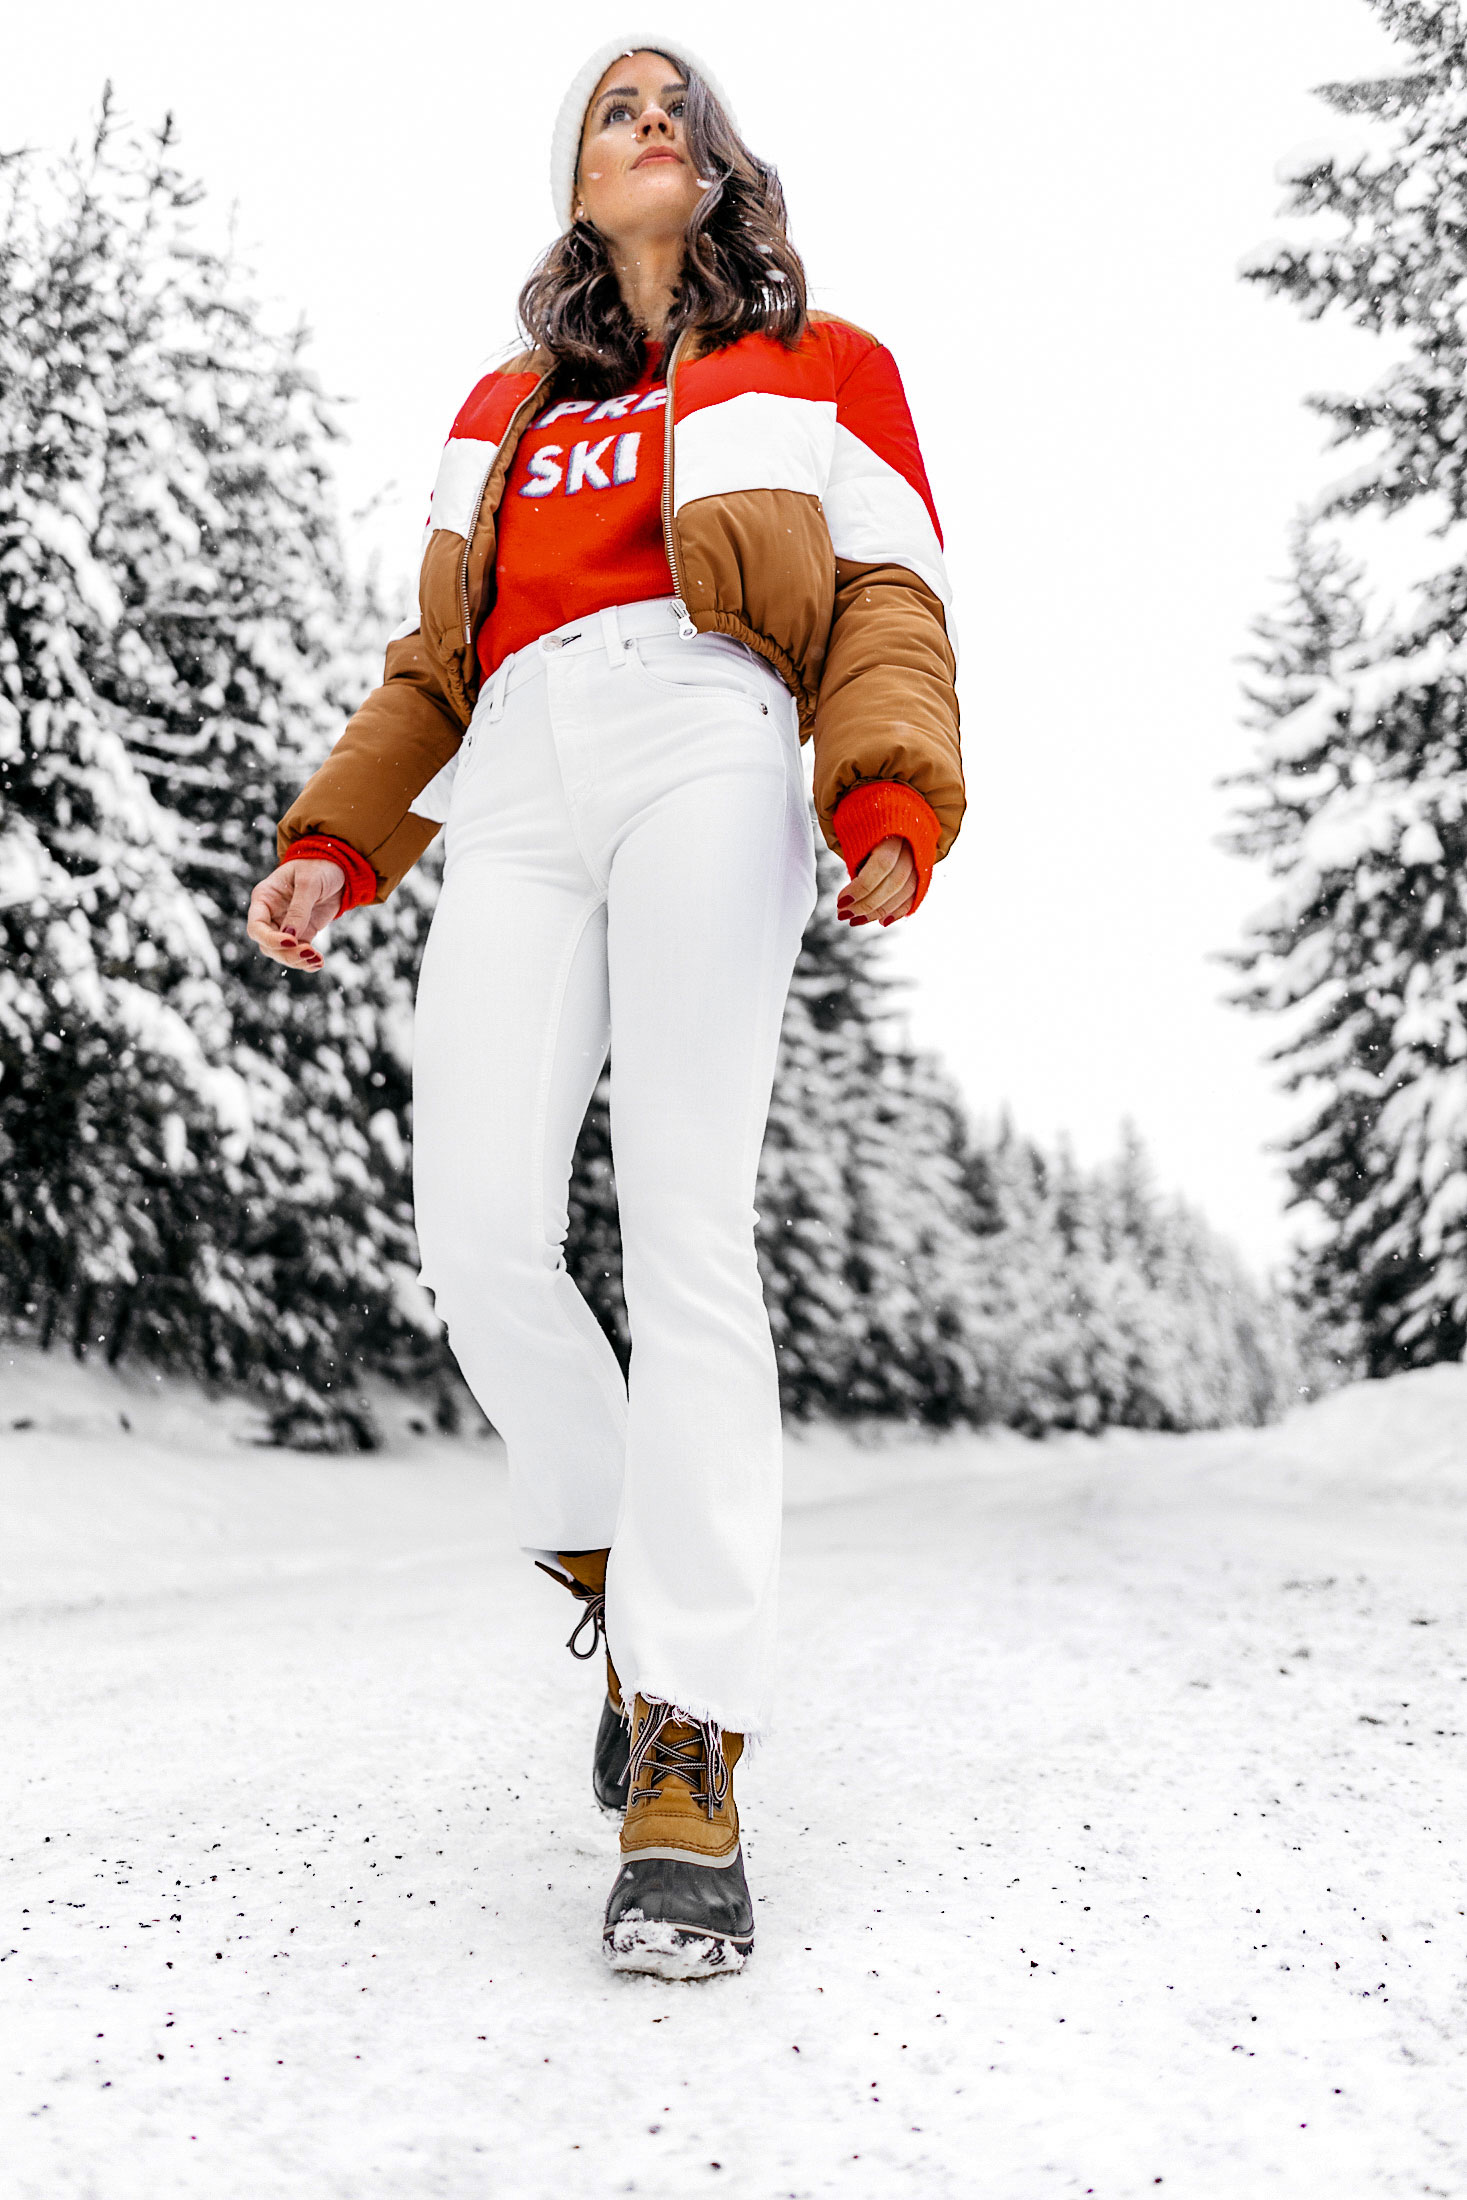 apres-ski-sweater-striped-vintage-puffer-coat-winter-snow-outfit-whistler-3.jpg